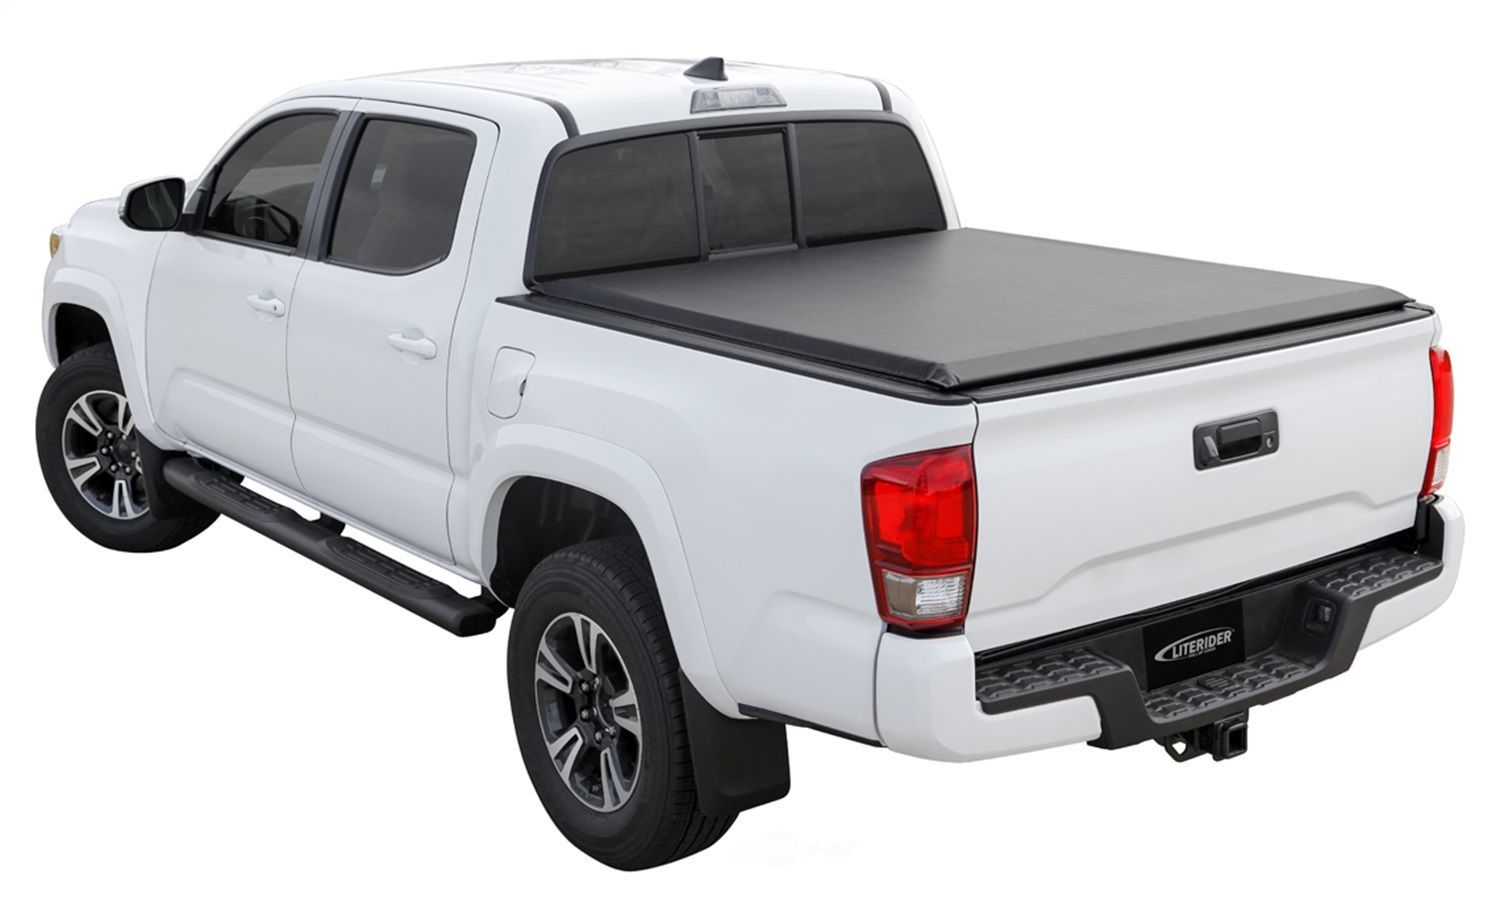 ACCESS COVER - Literider Roll-up Cover - XBP 35159